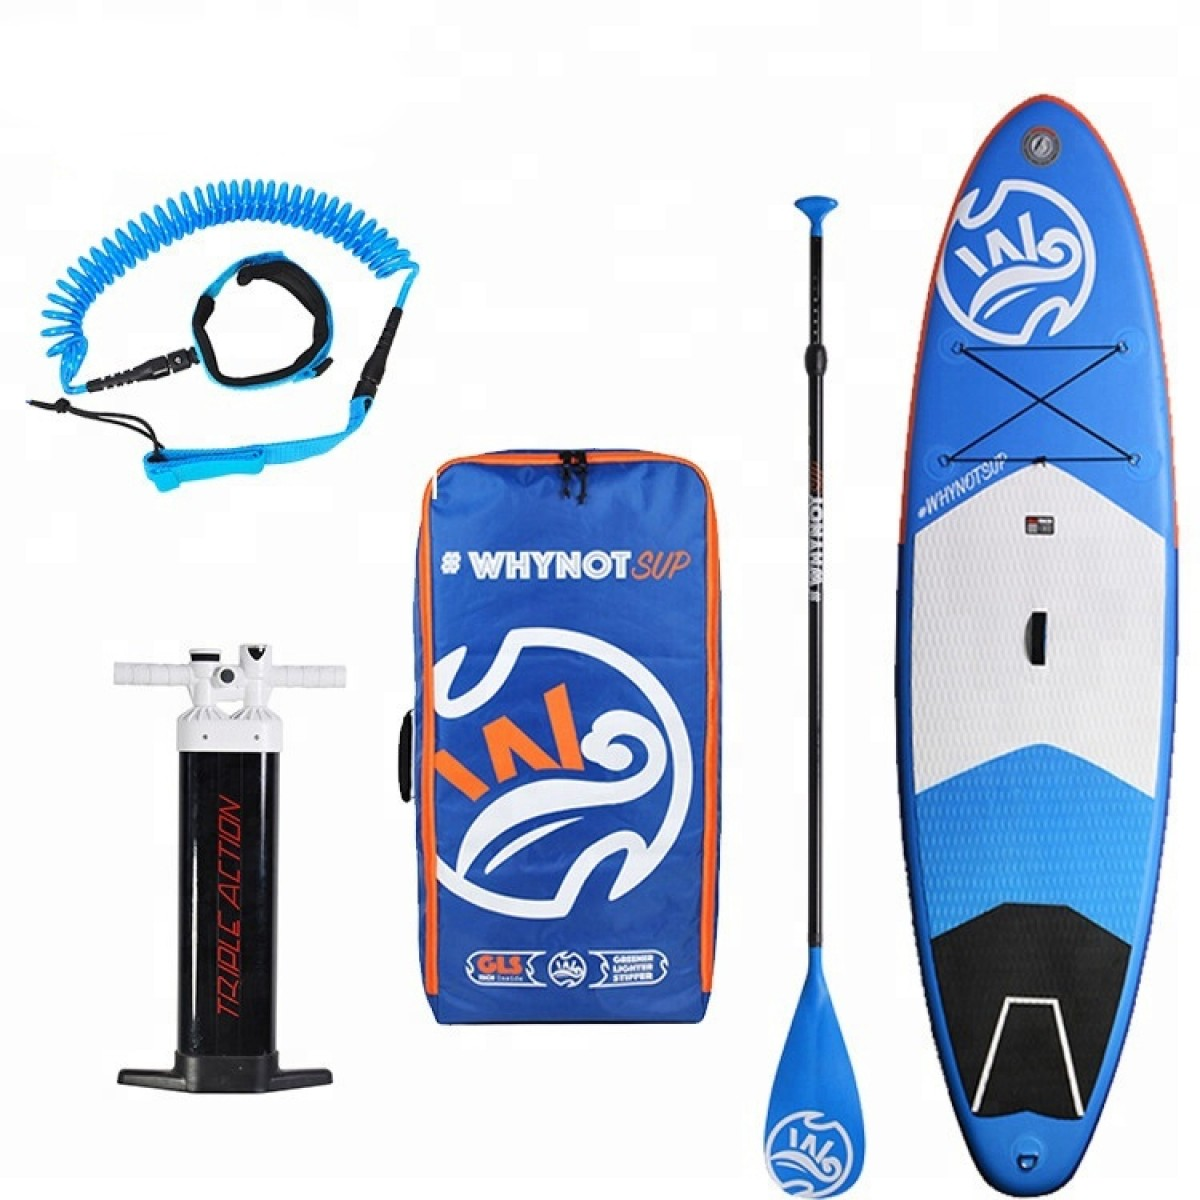 Why-not-sup Air drive -10,2